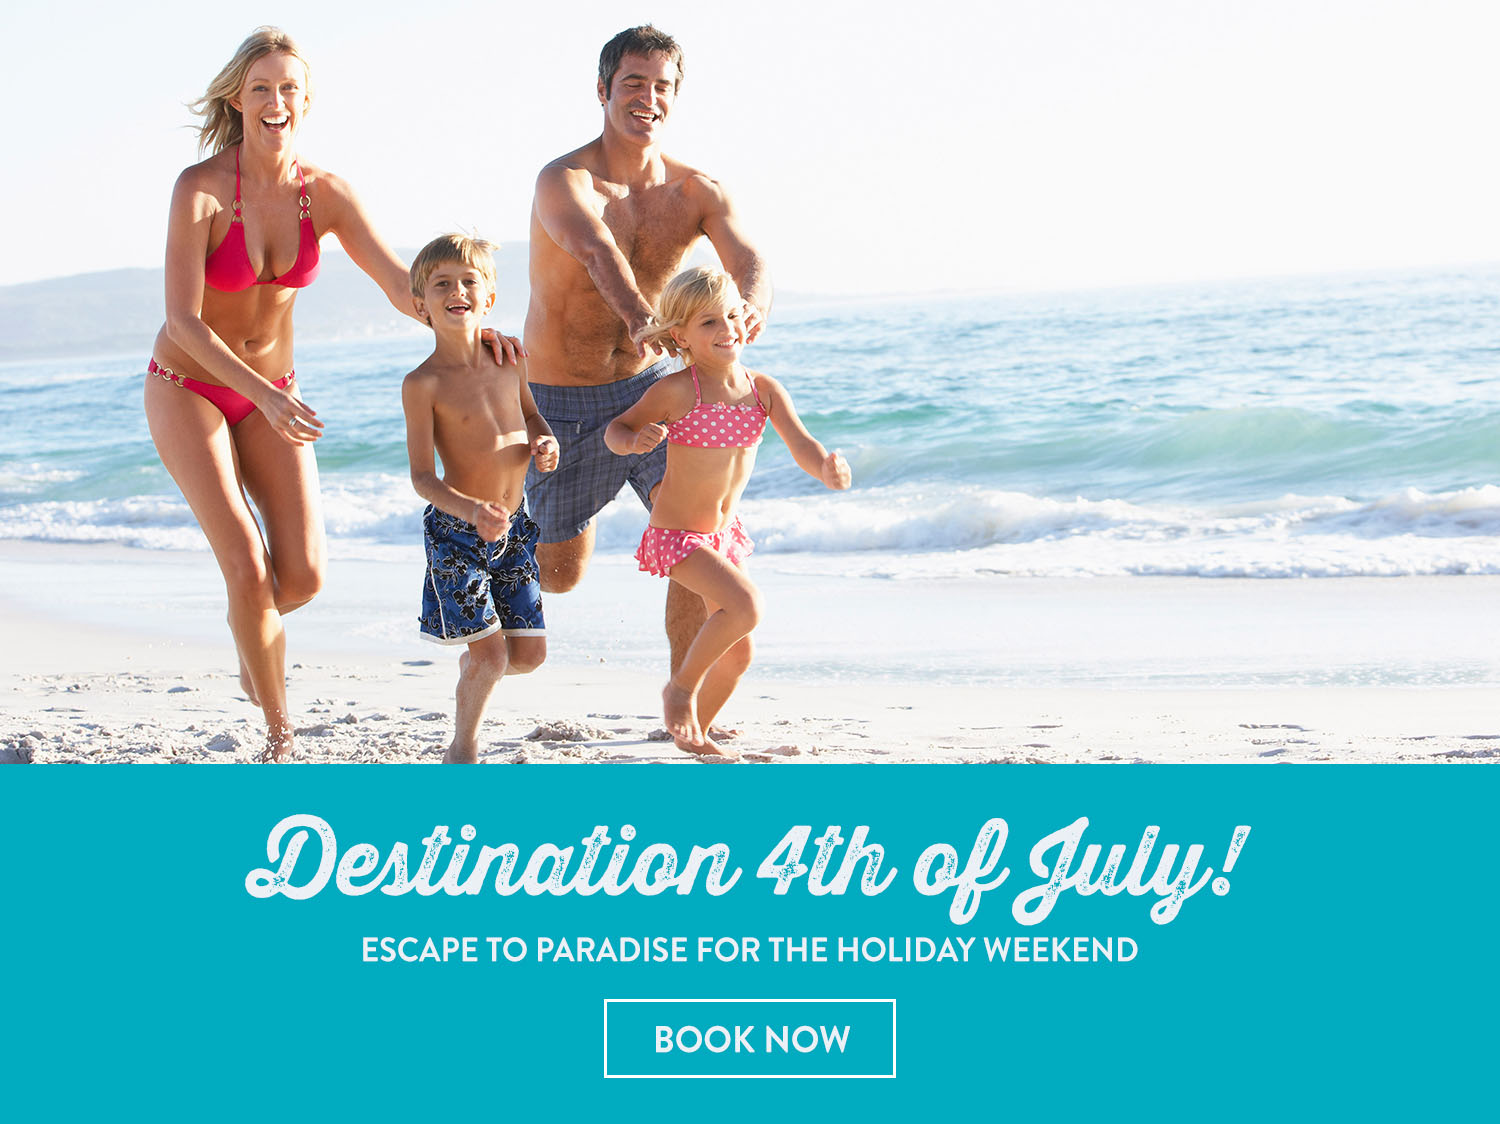 Destination 4th of July